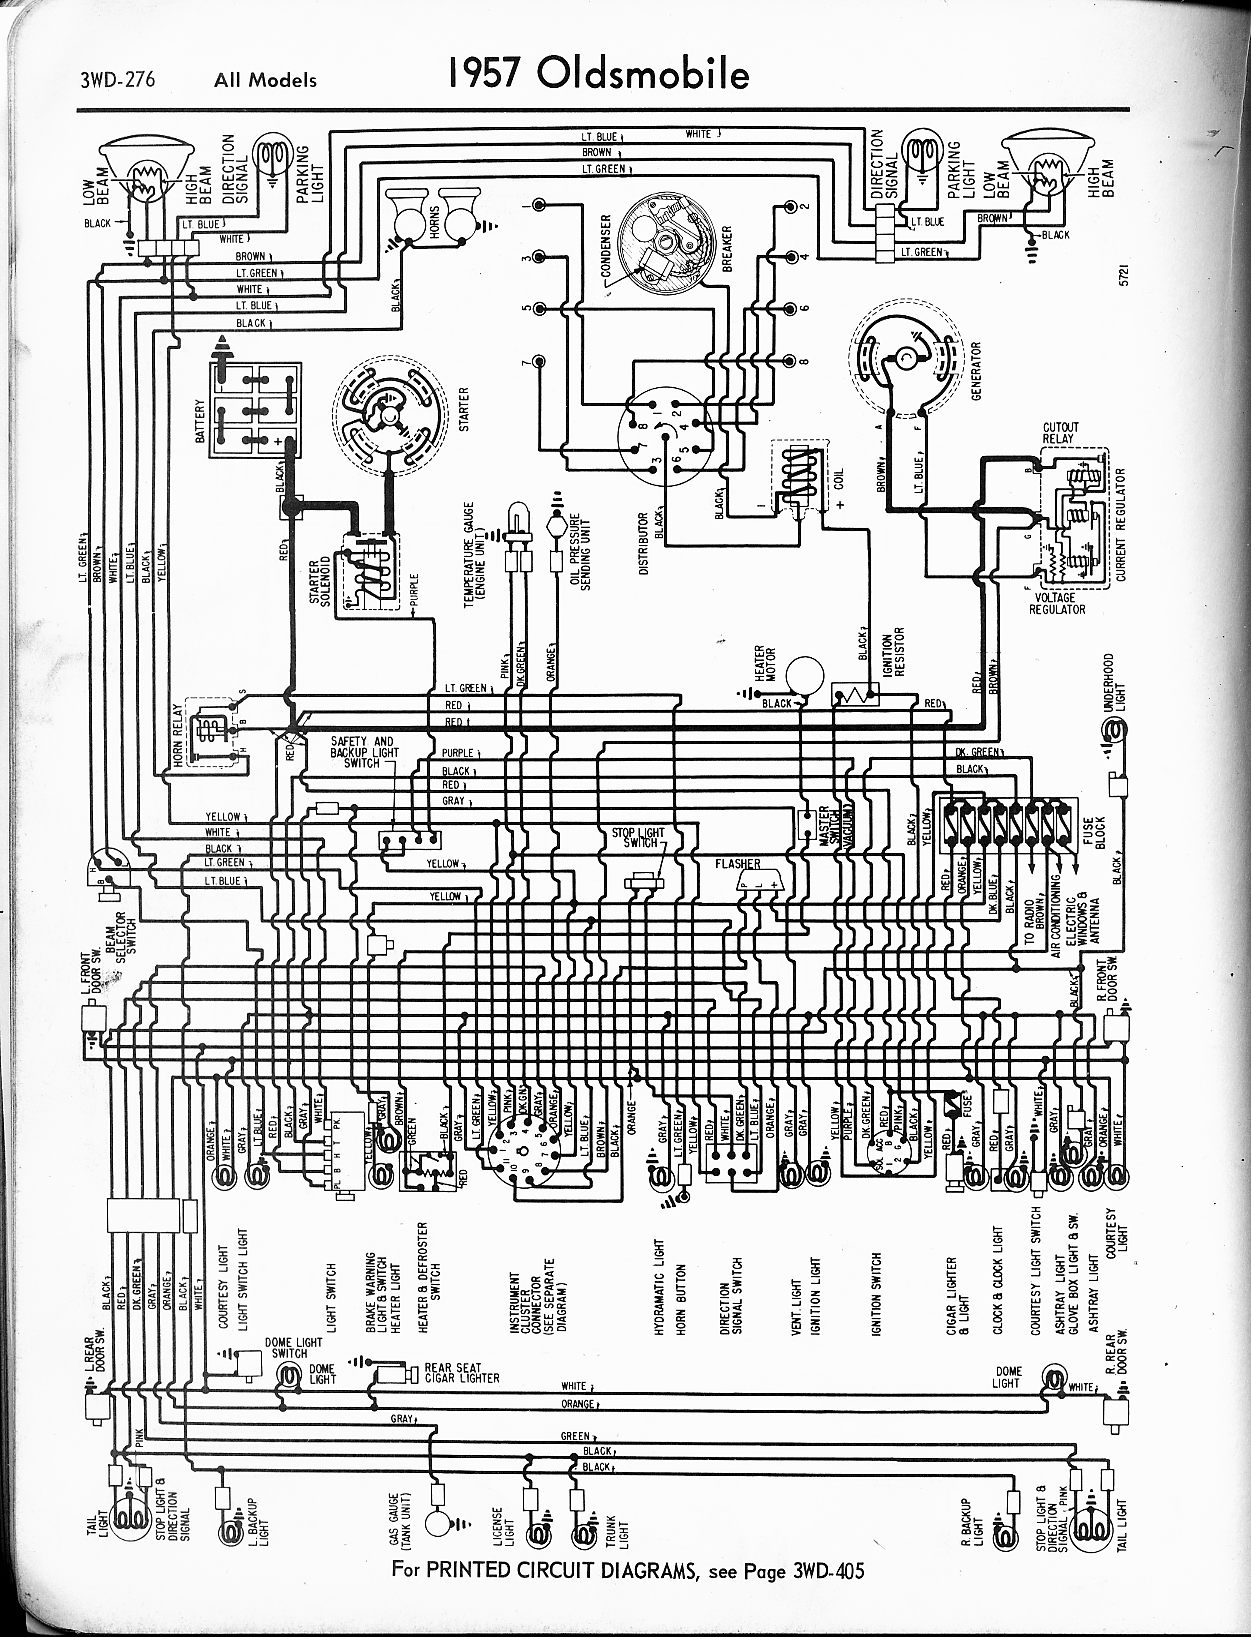 tiguan engine diagram enthusiast wiring diagrams u2022 rh rasalibre co